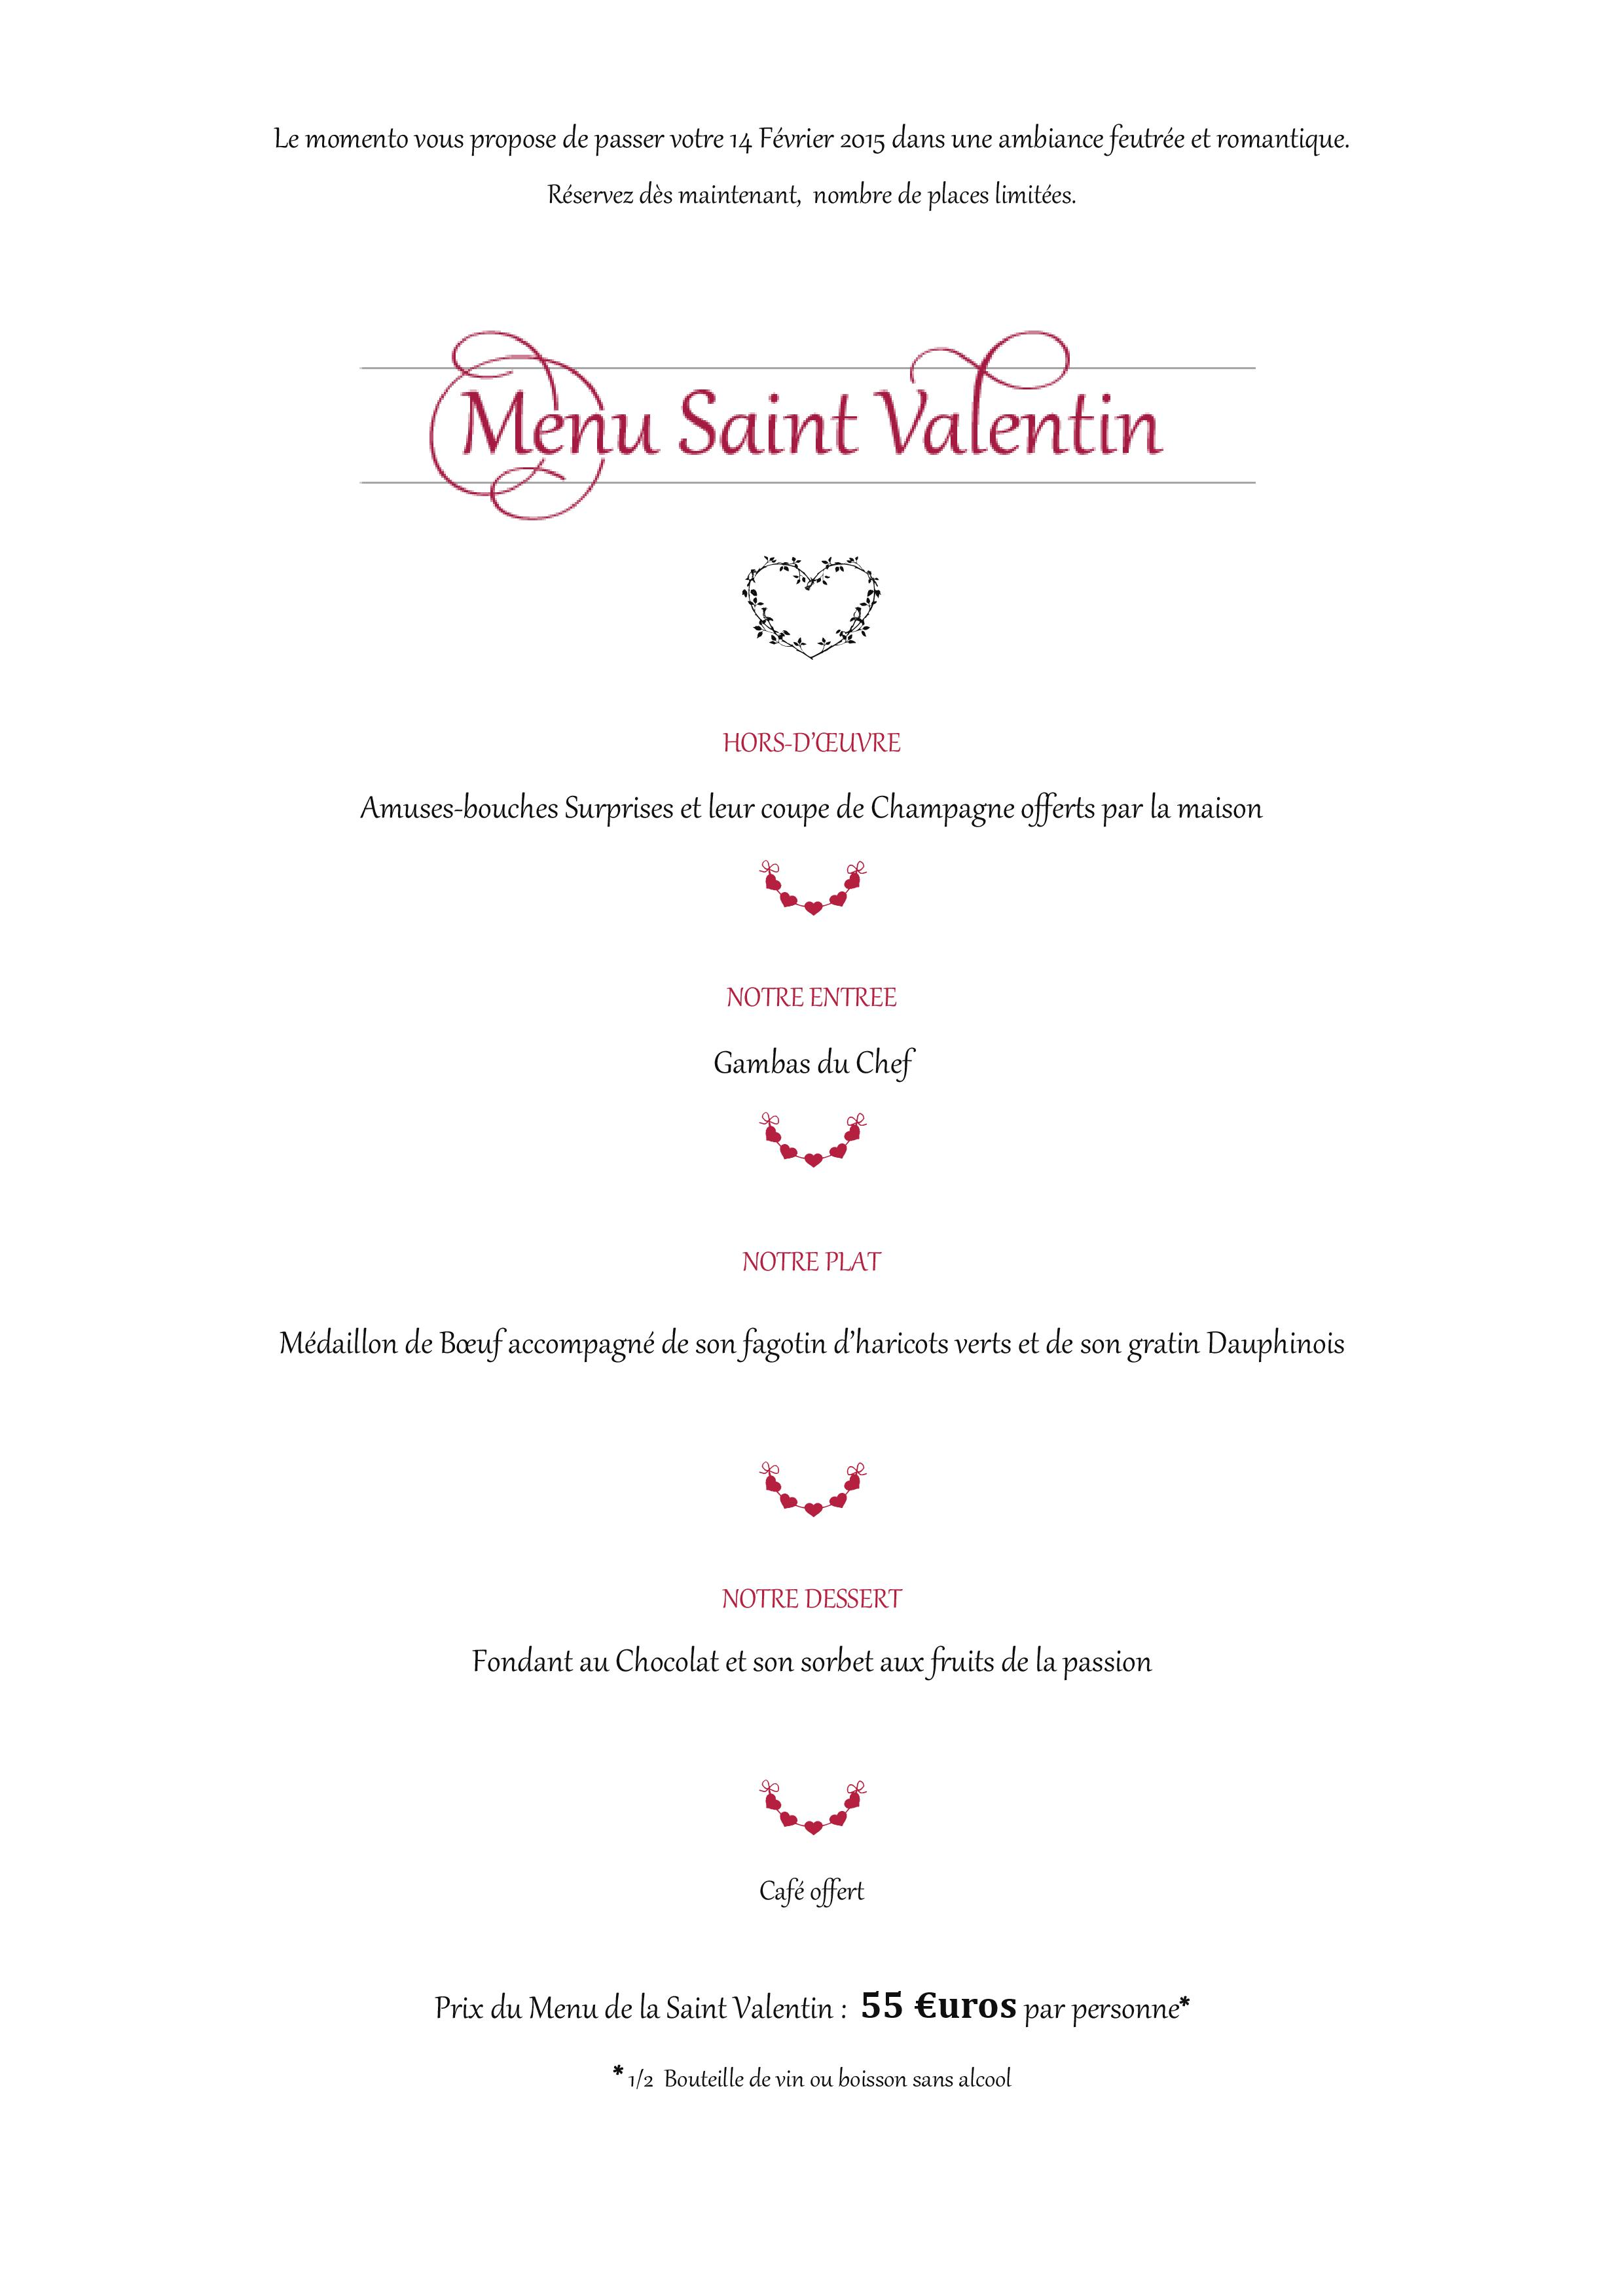 Menu St Valentin 2015 final 55 Euros-page-001